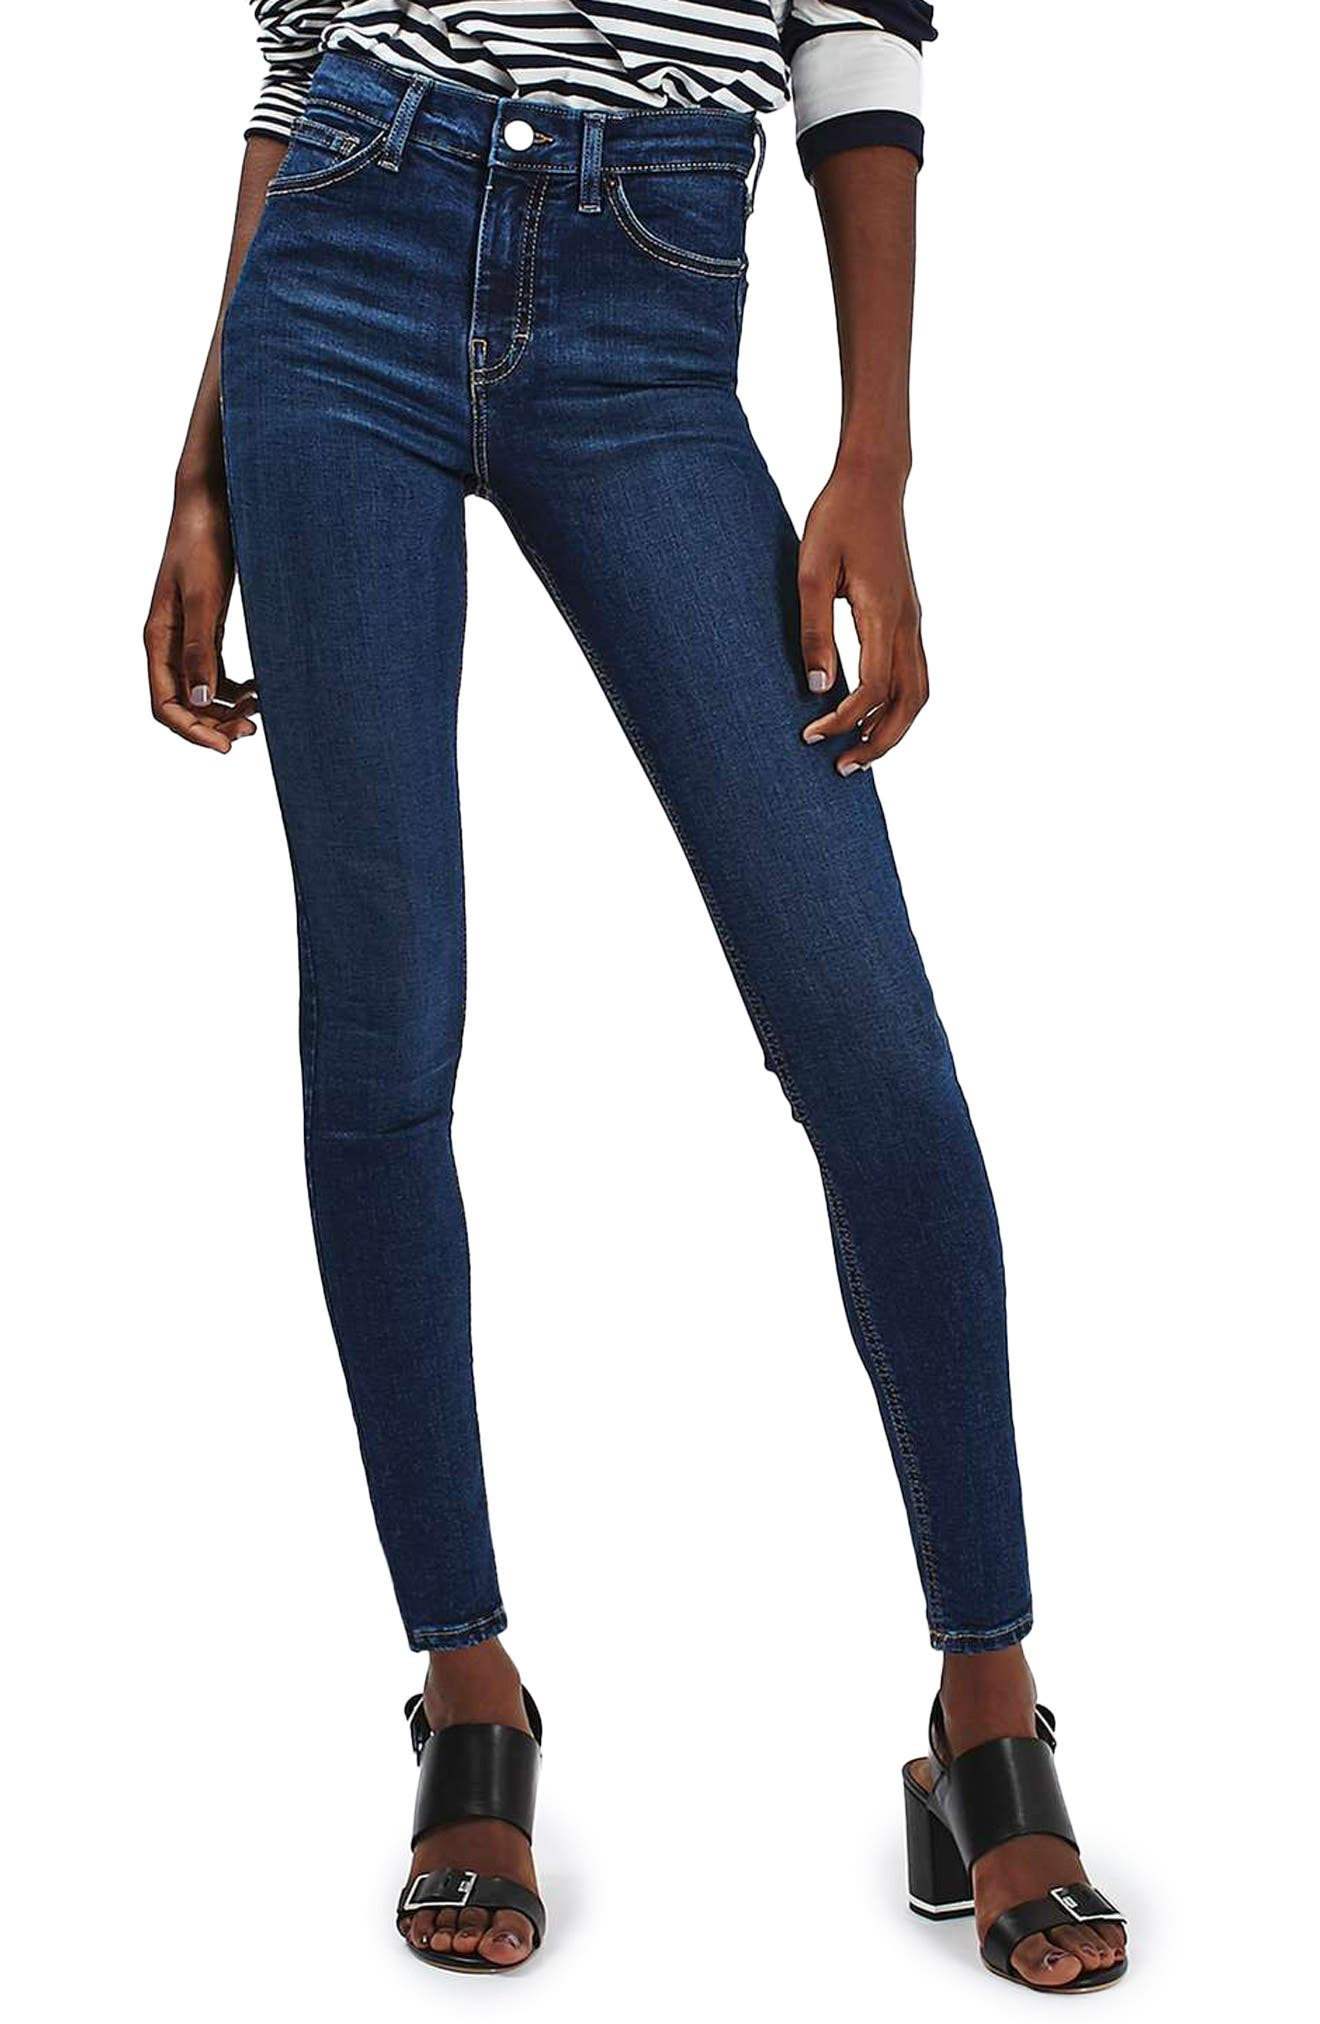 Jamie High Waist Ankle Skinny Jeans,                         Main,                         color, 401